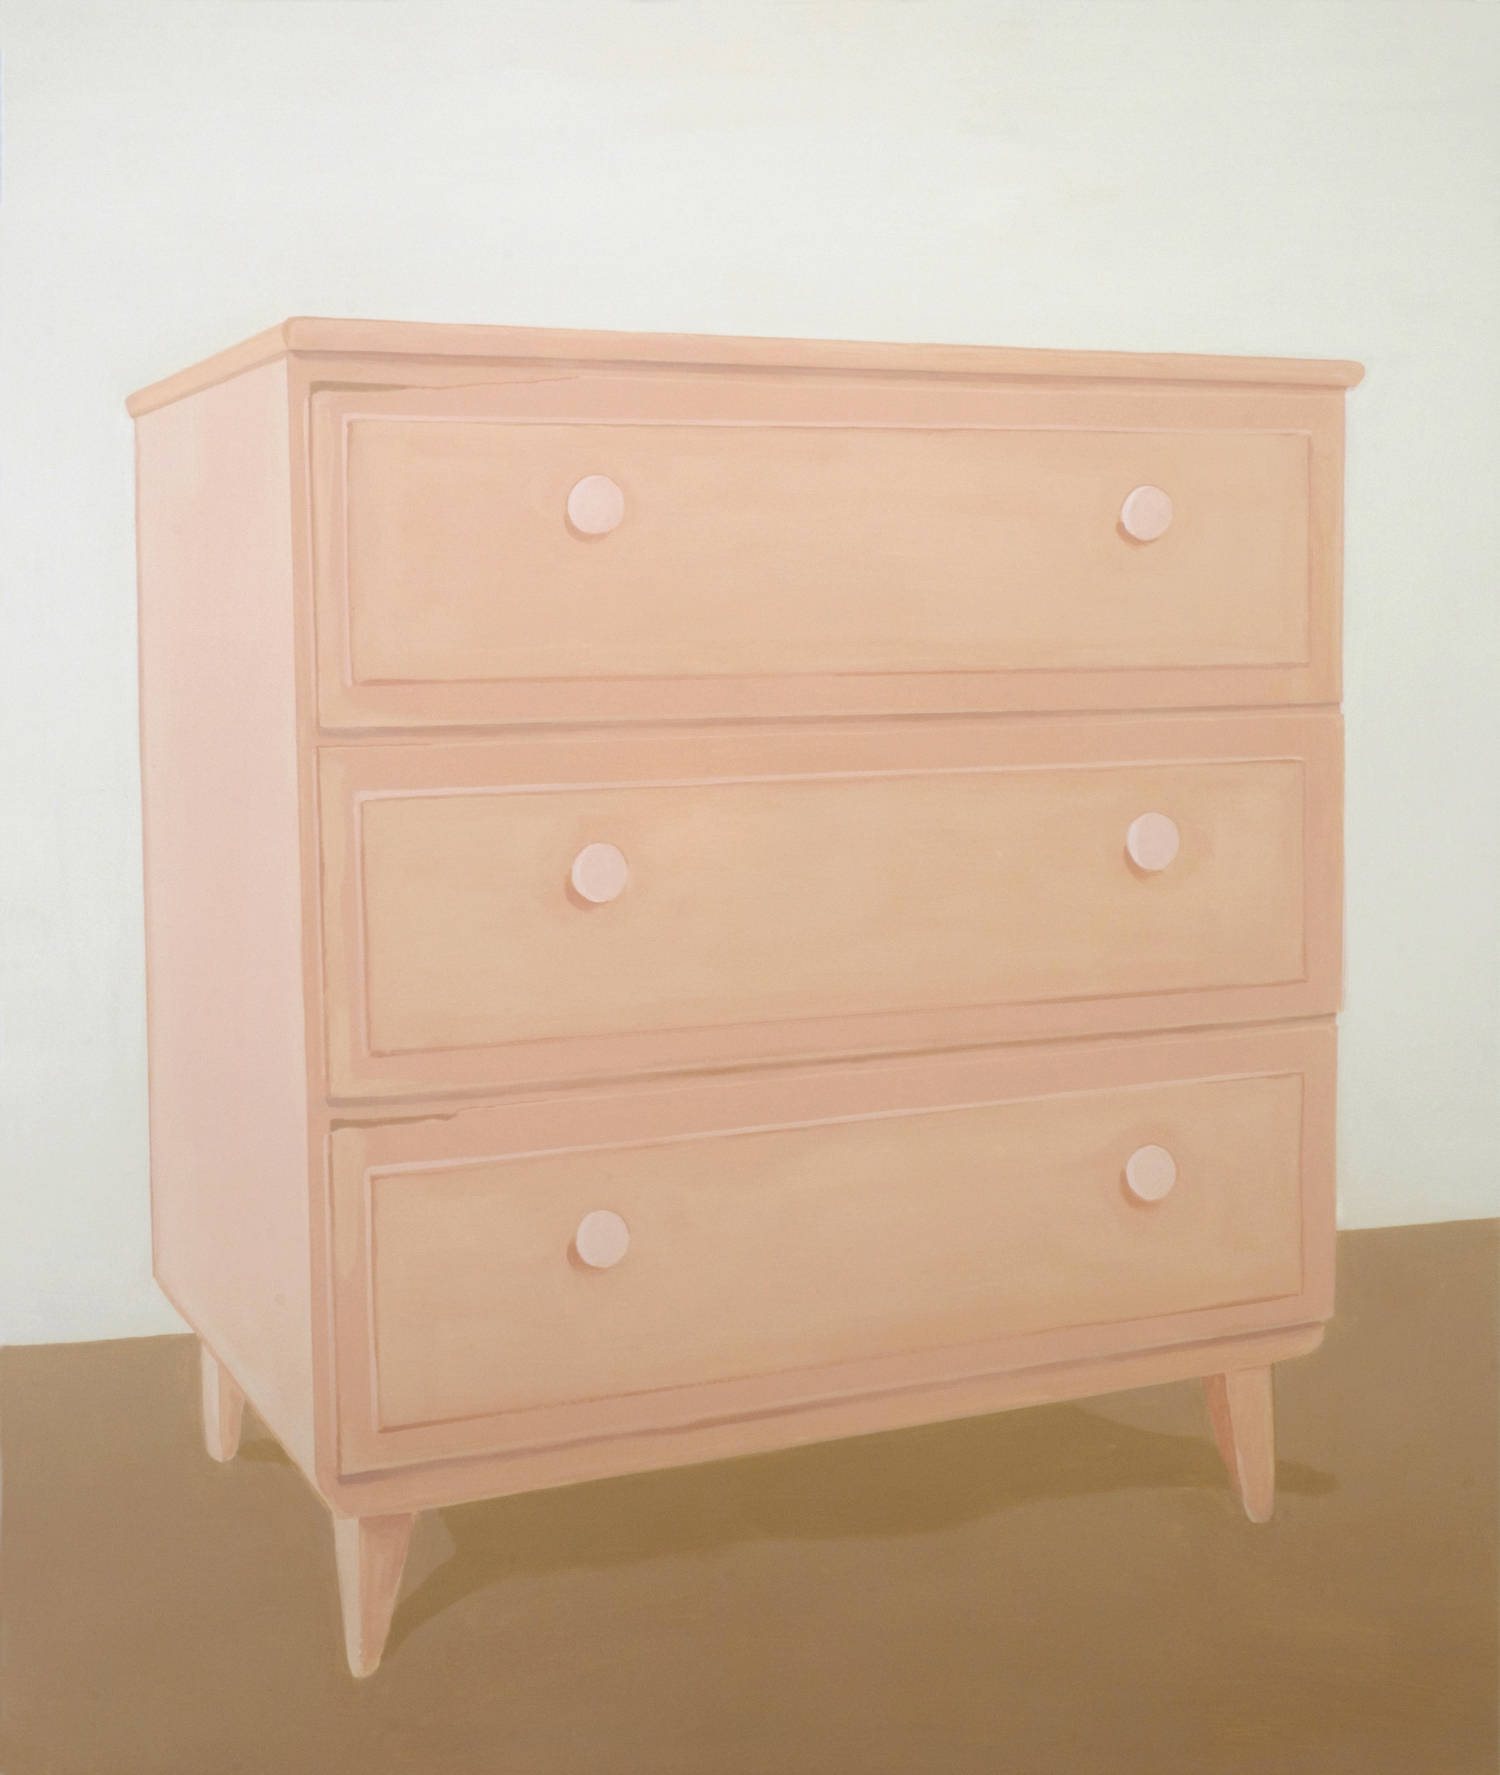 Pink Dresser, acrylic on canvas, 65 x 55 inches, 2006.